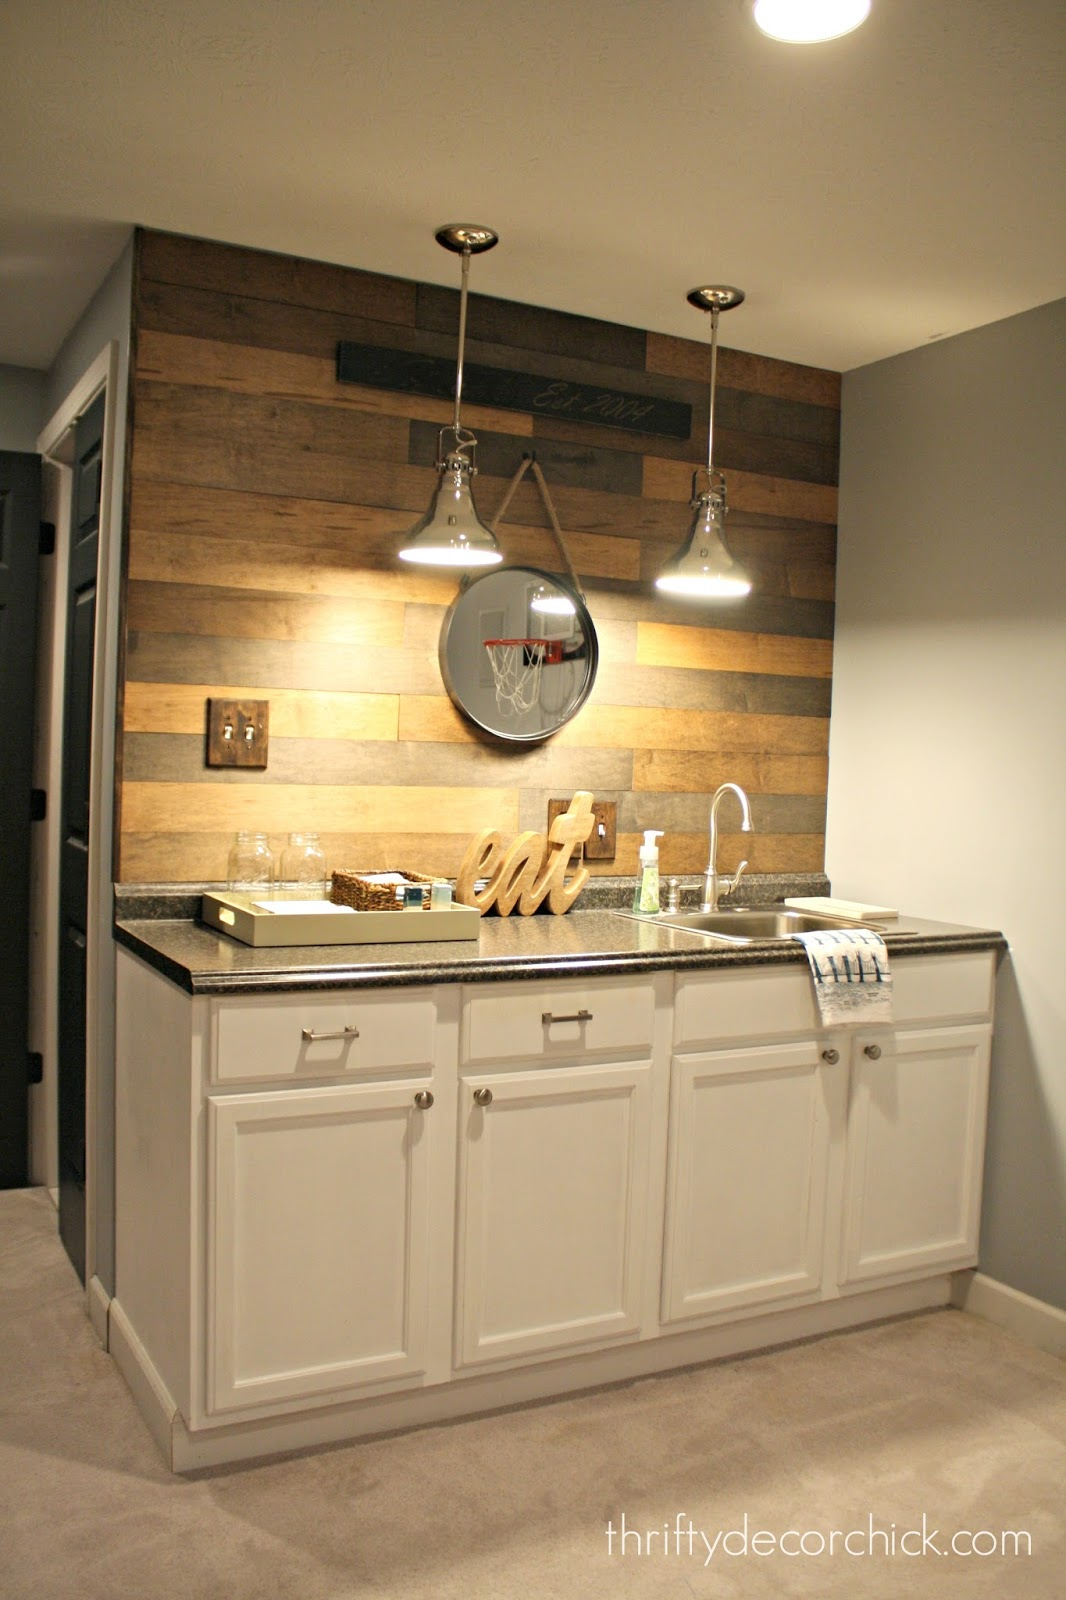 My new favorite wood planked wall from thrifty decor chick for Basement kitchenette with bar